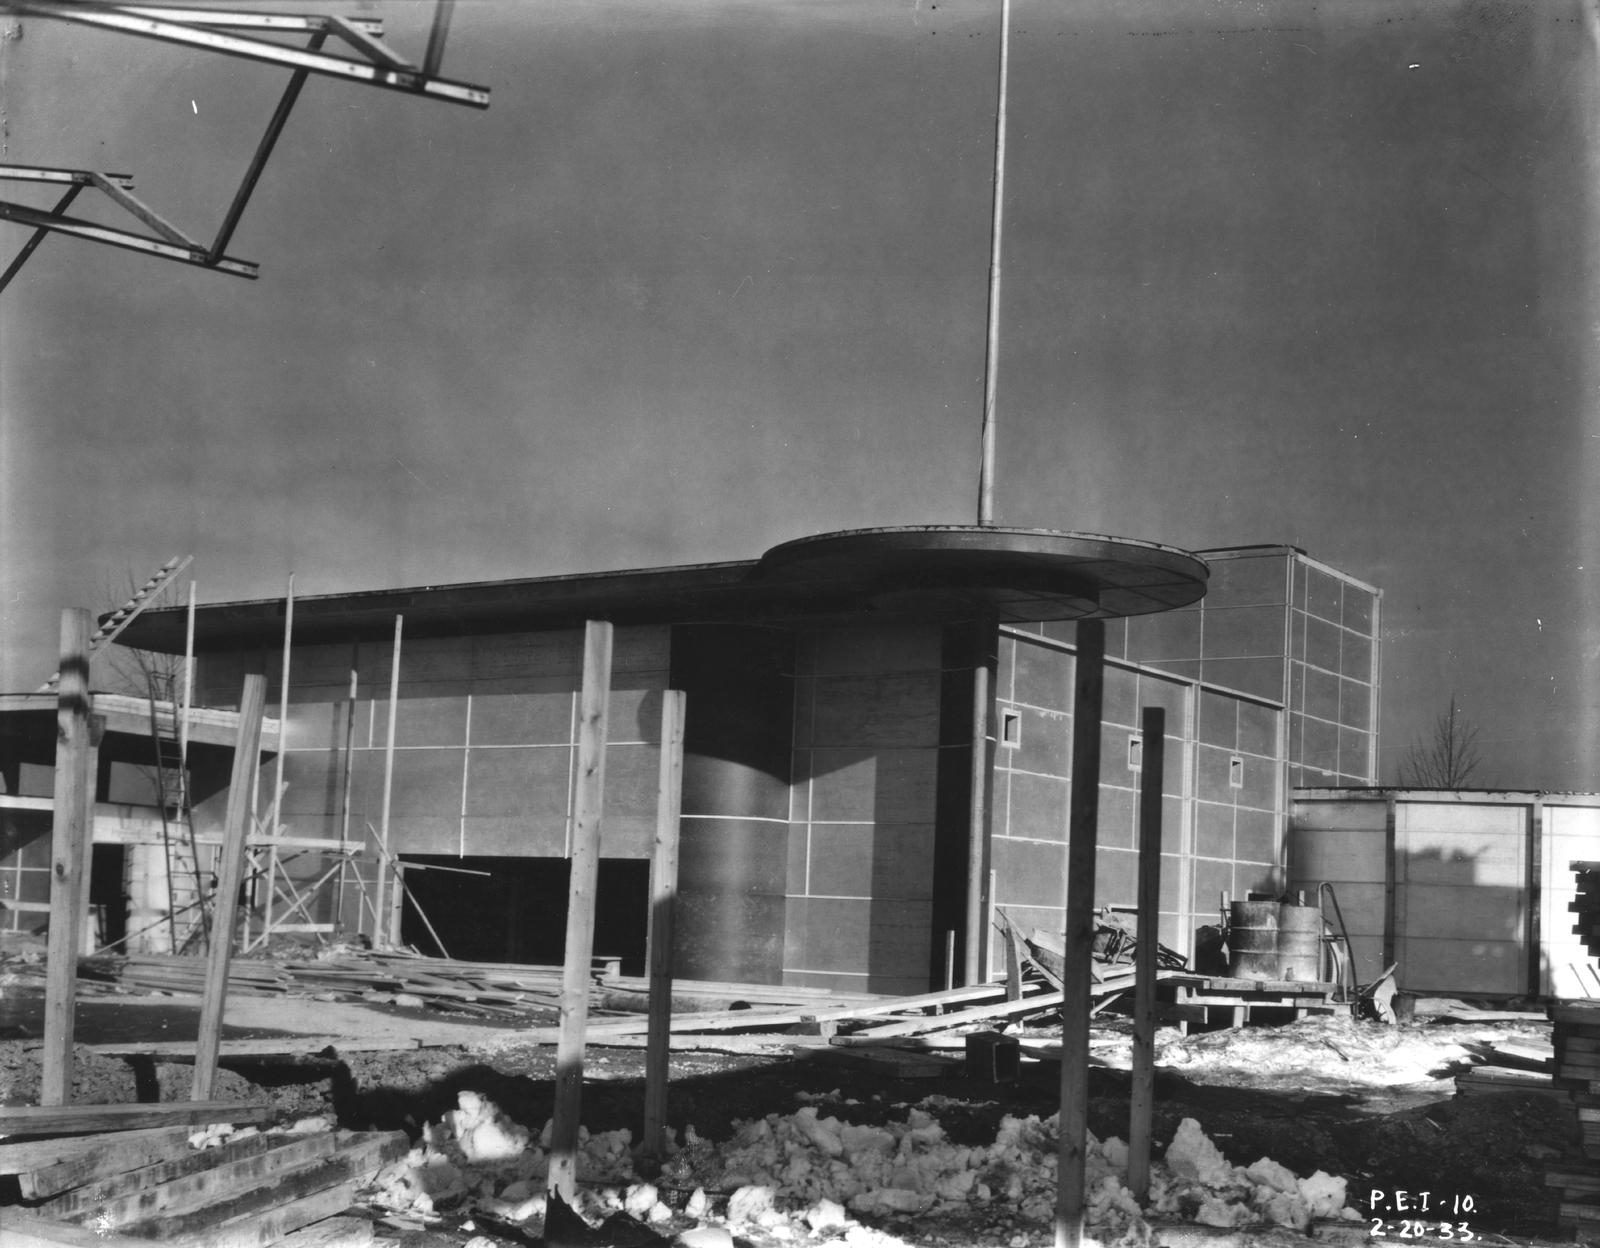 [Construction of the children's theater for the Enchanted Island exhibit at A Century of Progress. The photo was taken in February of 1933, a few months before the grand opening of the Fair.]